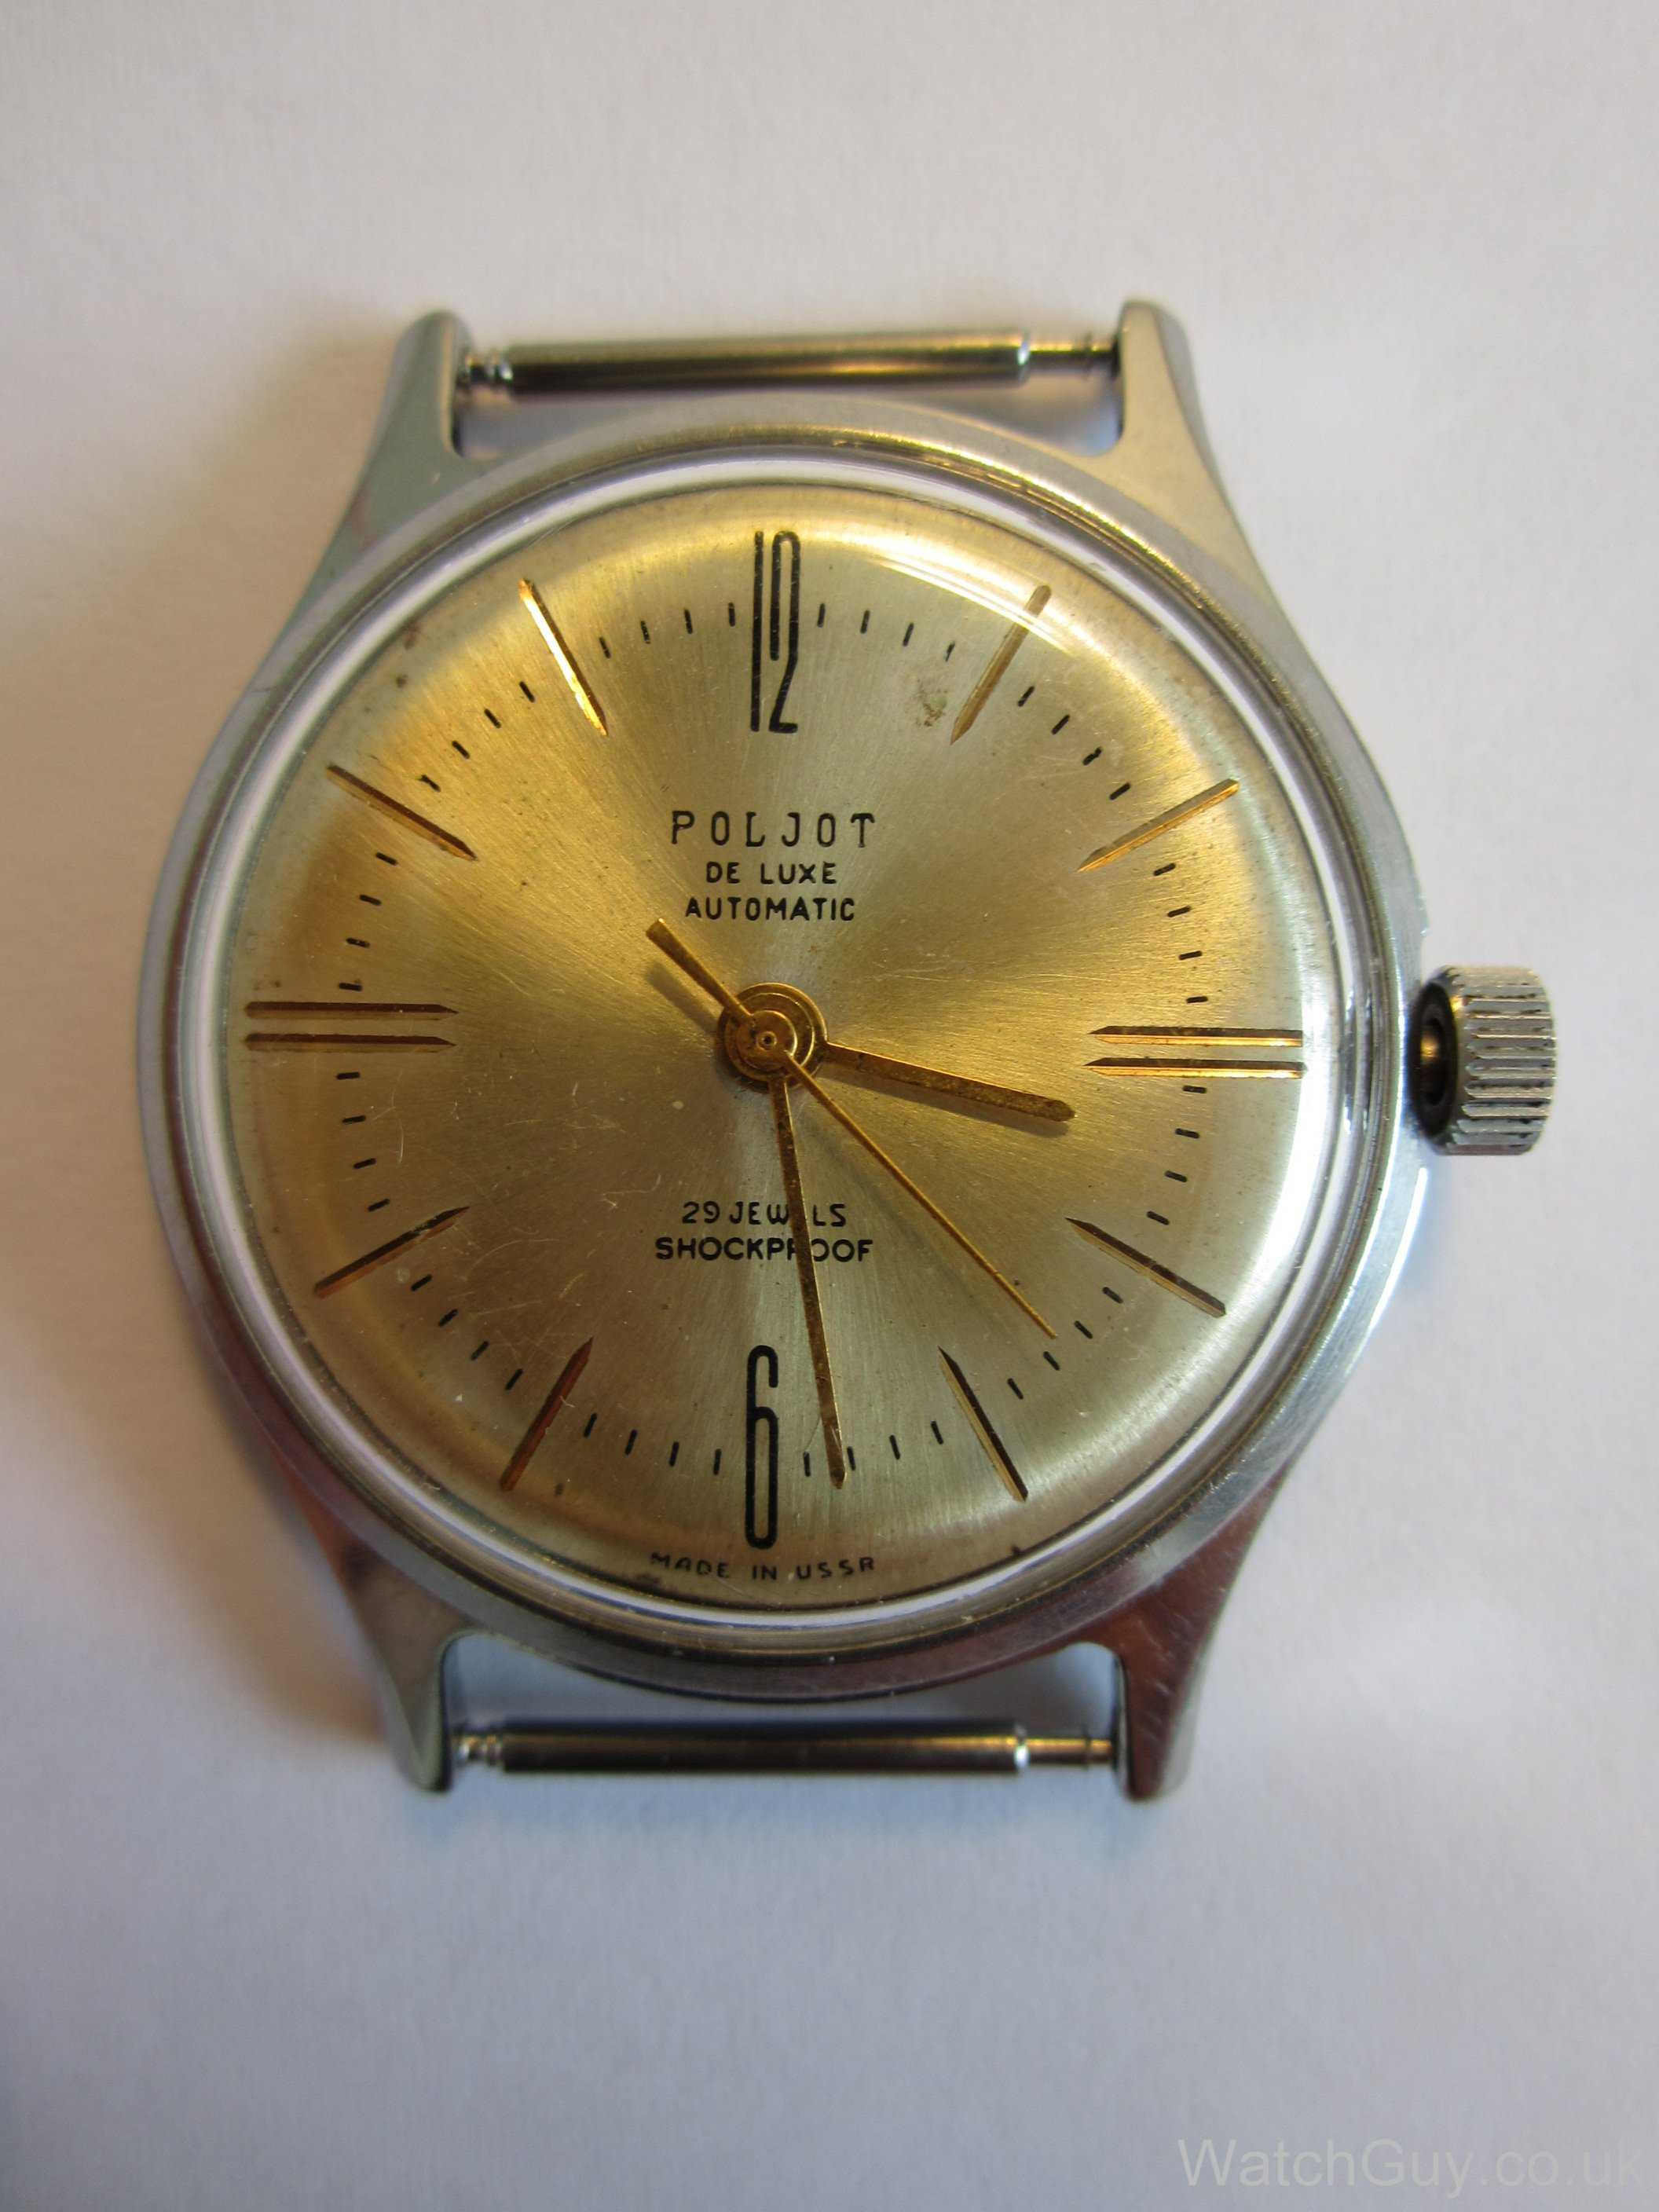 Service repair poljot deluxe automatic calibre 2415 watch guy for Foljot watches